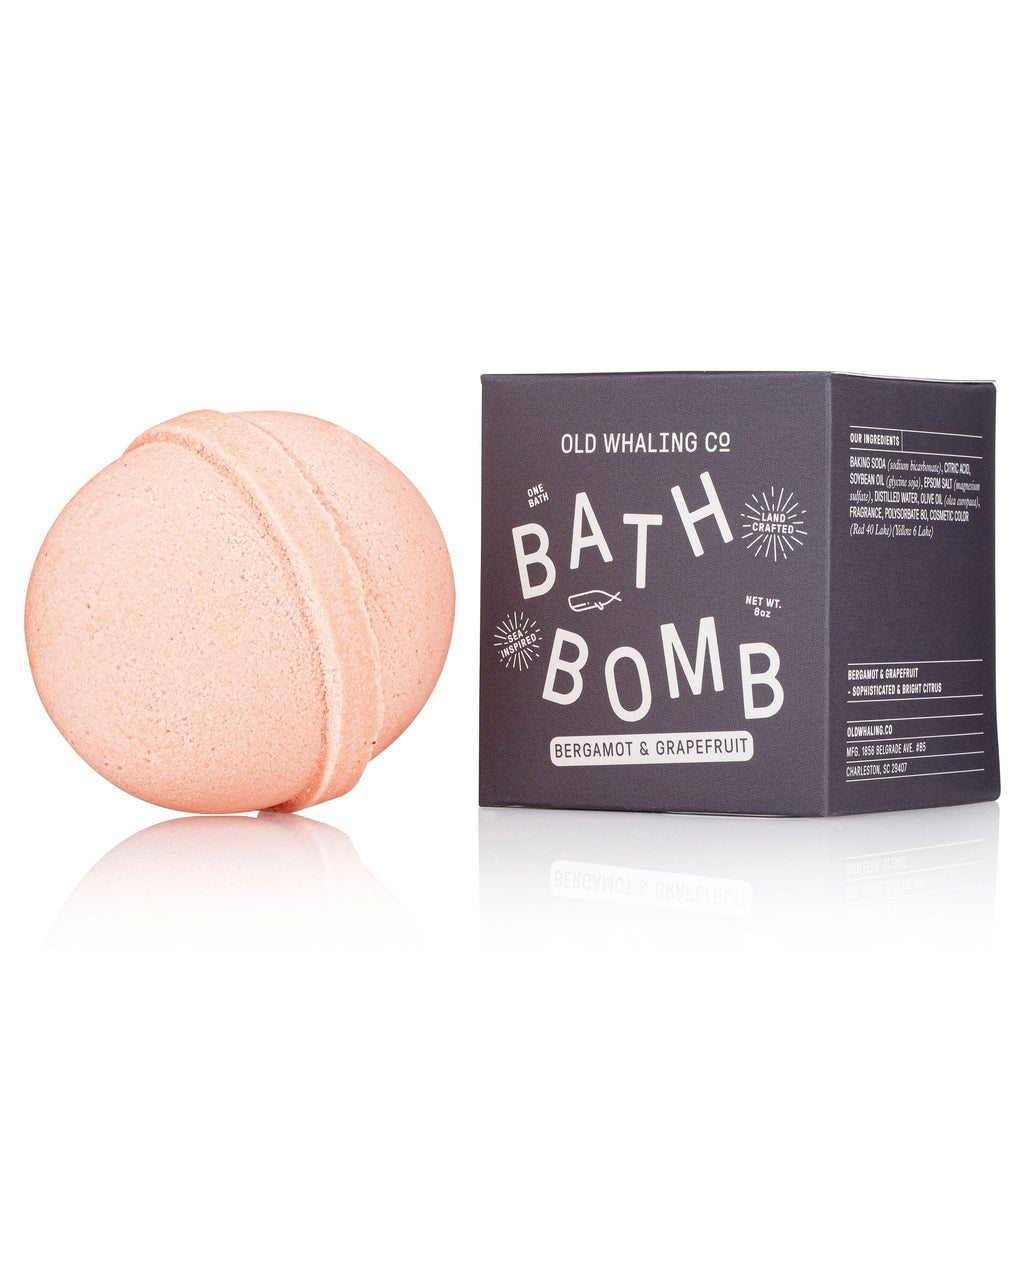 Bath Bombs!! Old Whaling Company Bergamot & Grapefruit